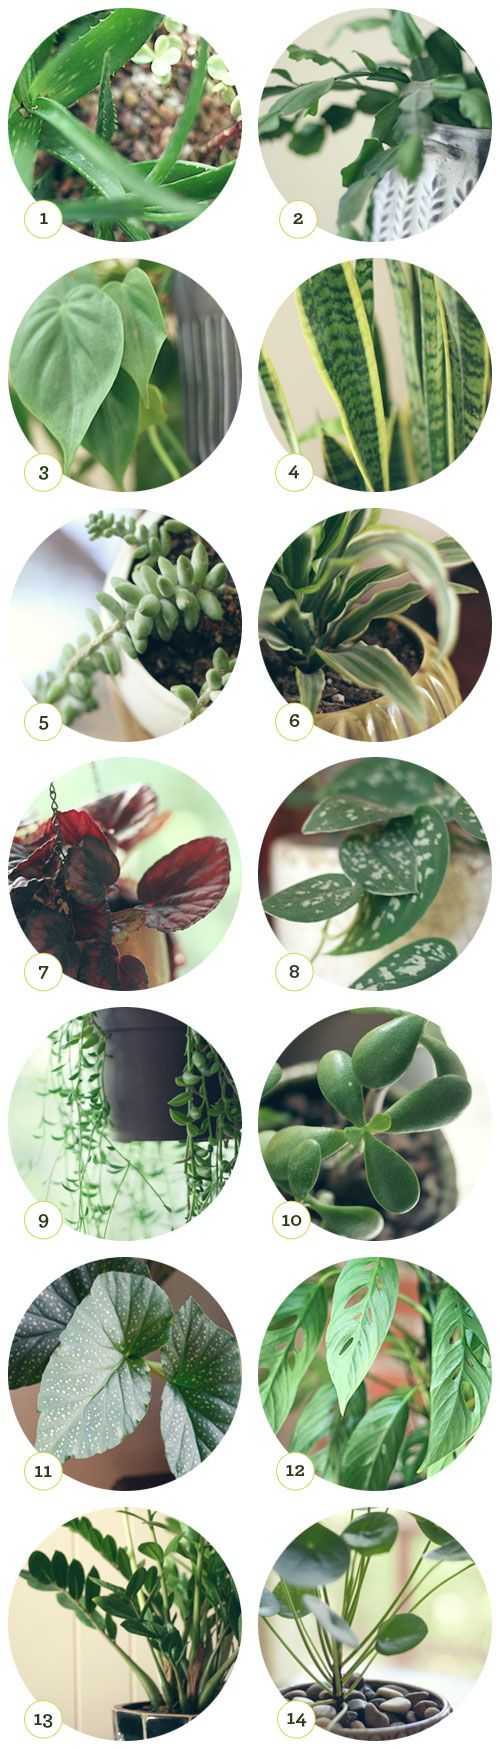 1. aloe  2. christmas cactus  3. philodendron  4. snake plant  5. donkey's tail plant  6. lemon lime plant  7. begonia  8. silver philodendron  9. string of bananas plant  10. jade  11. angle wing begonia  12. swiss cheese plant  13. z plant  14. chinese money plant